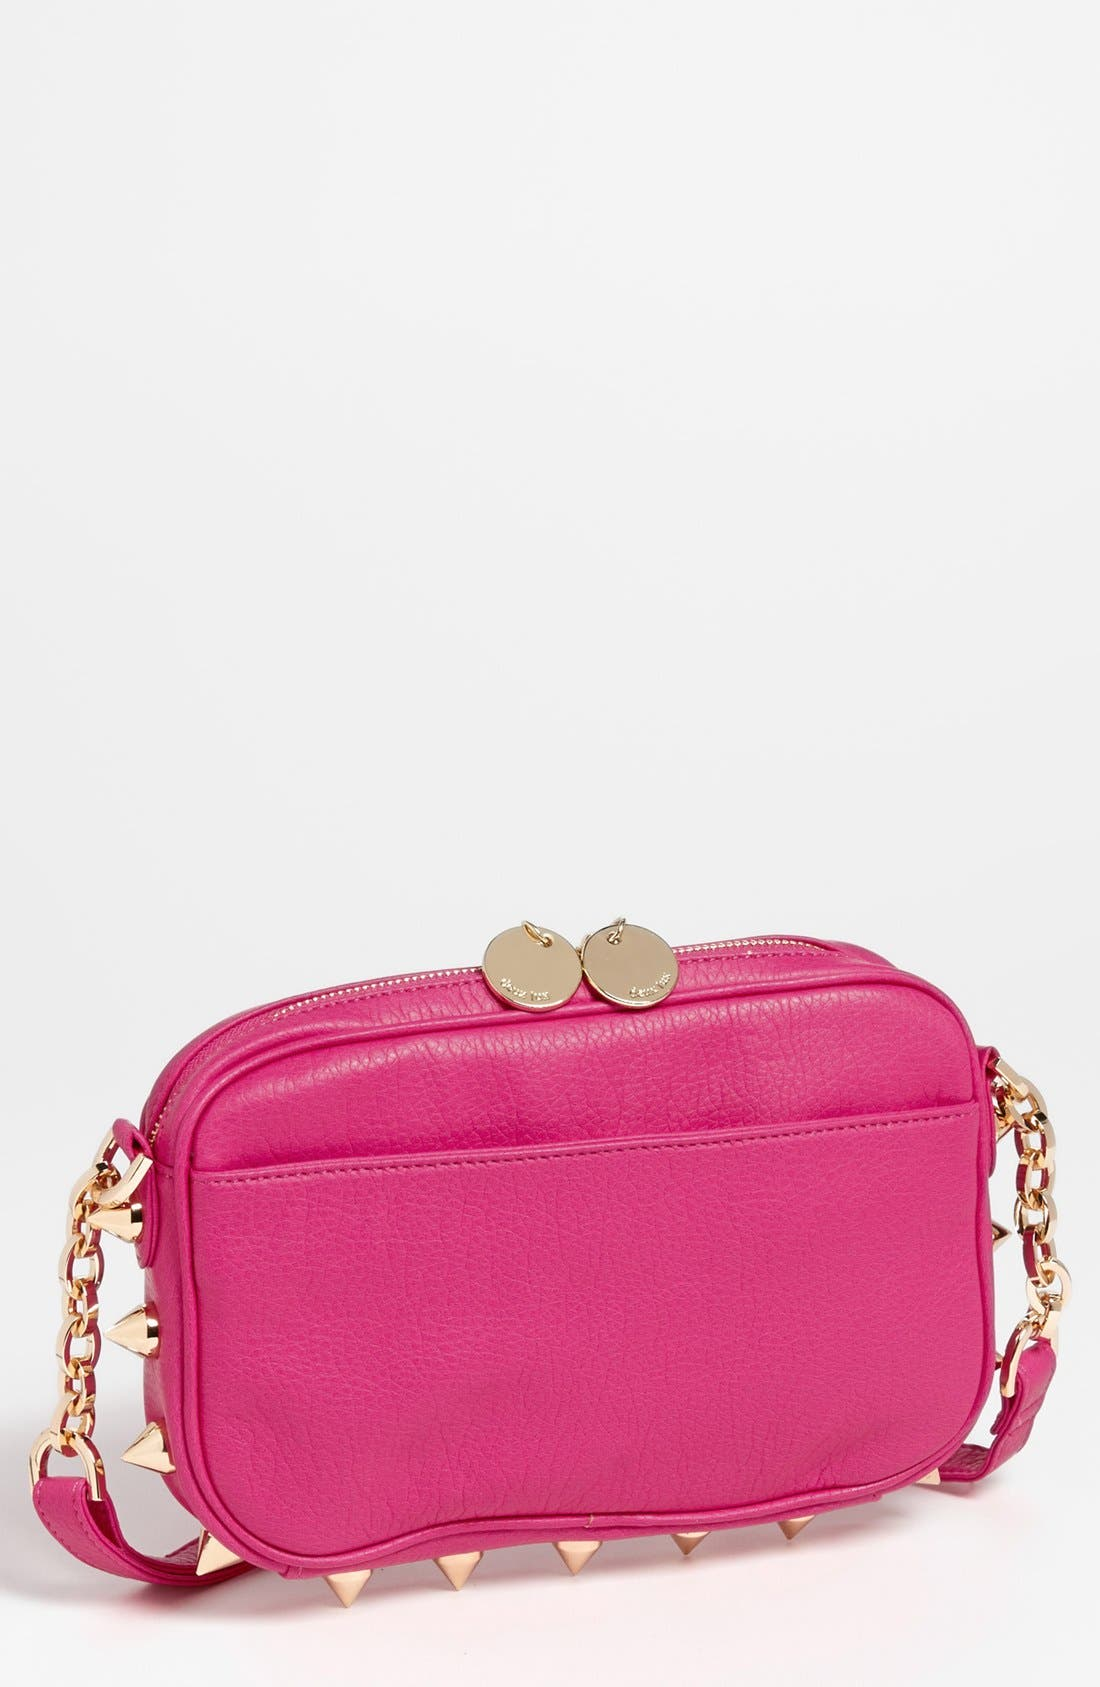 Alternate Image 1 Selected - Deux Lux 'Empire State' Faux Leather Crossbody Bag